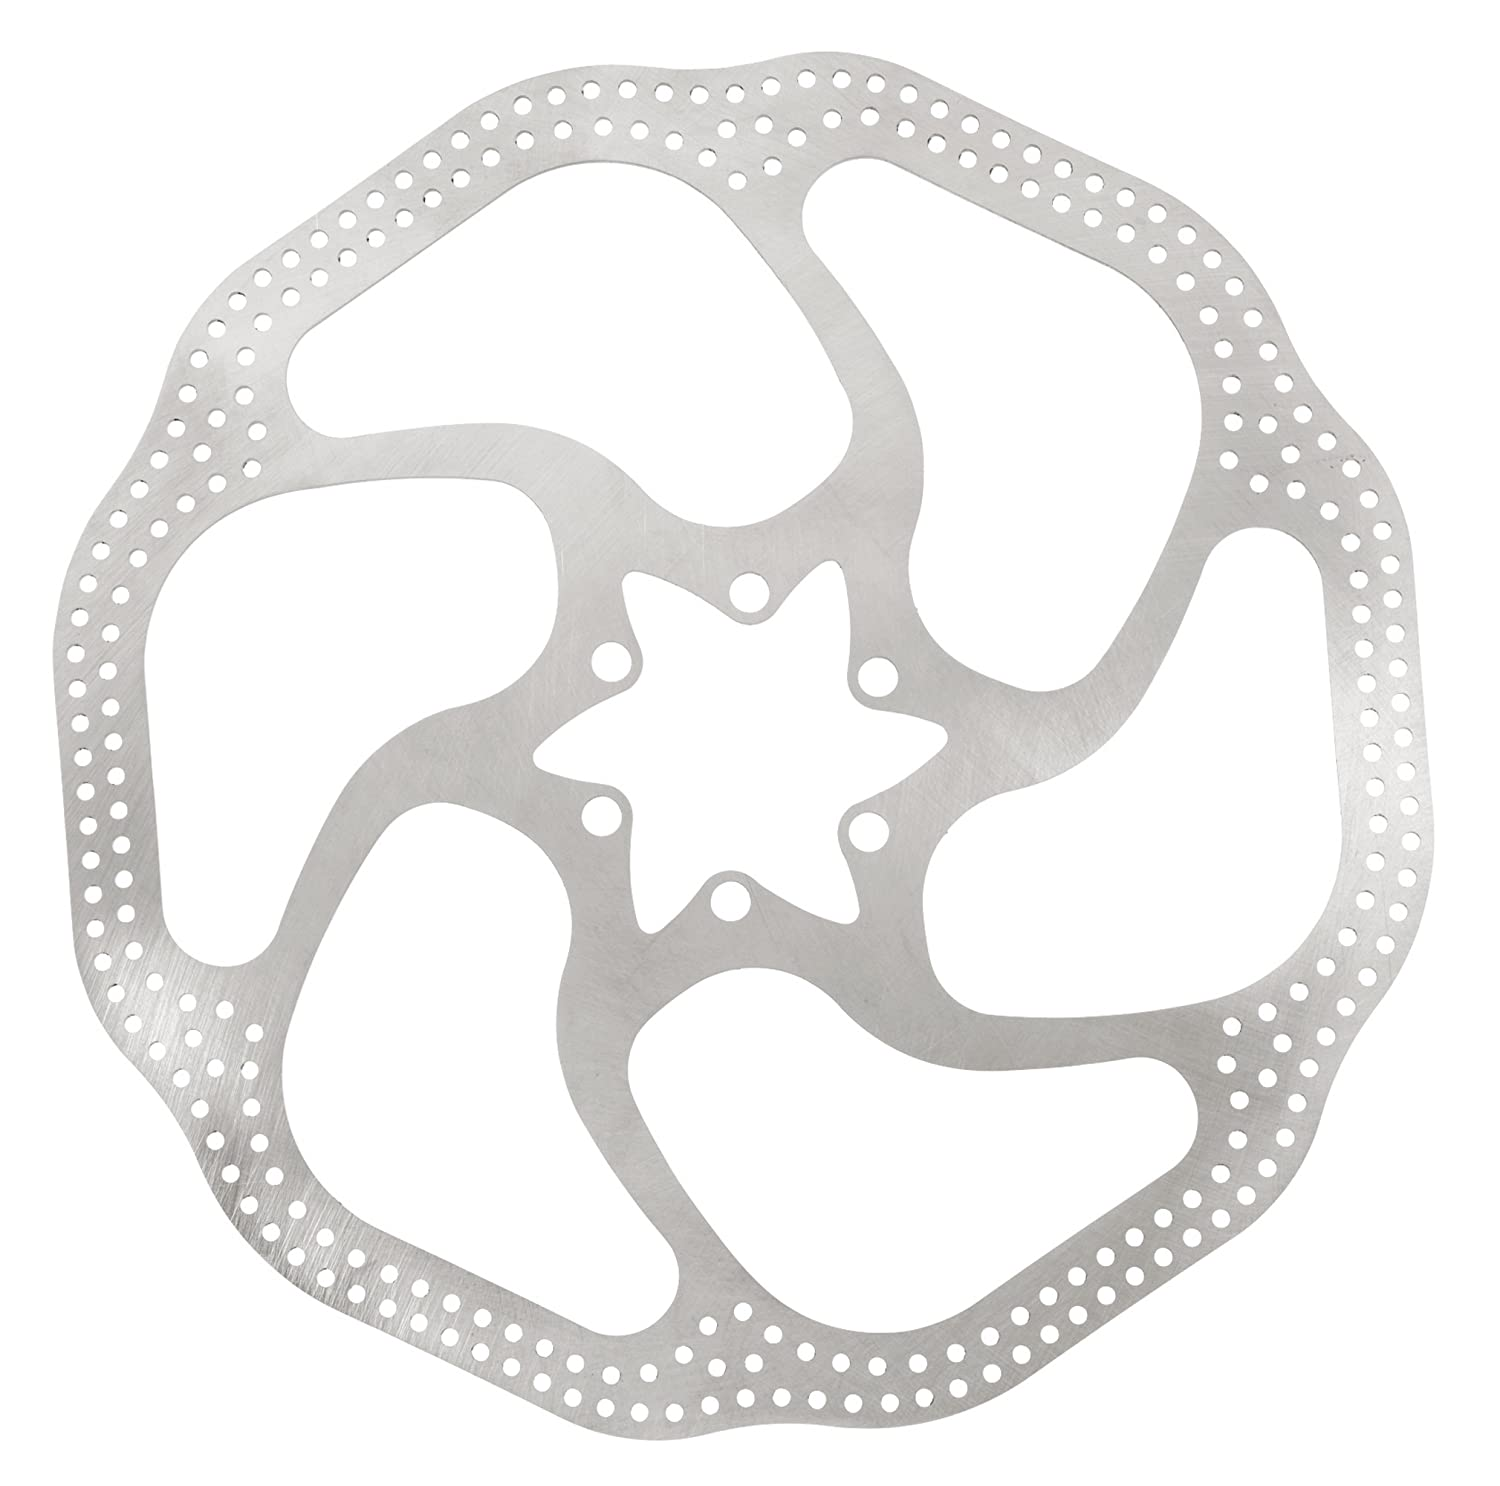 Sram Hsi Disc Rotor 160mm 180mm Products T Centerline 1pc Avid Clean Sweep G2